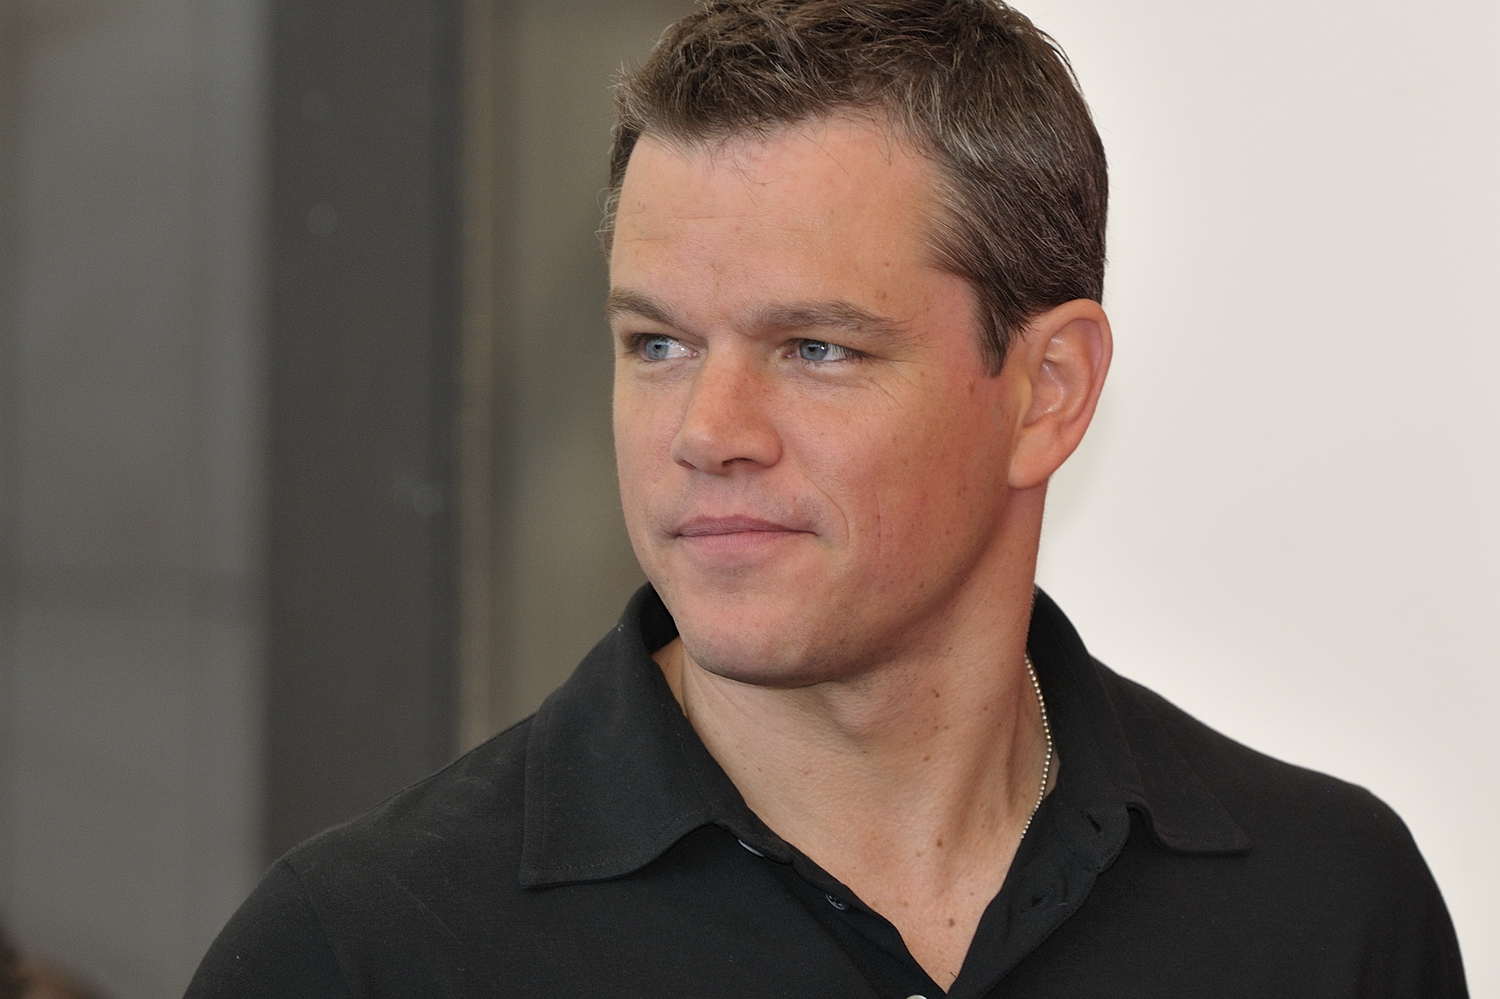 Matt Damon Net Worth, Age, Height, Wife, Profile, Movies